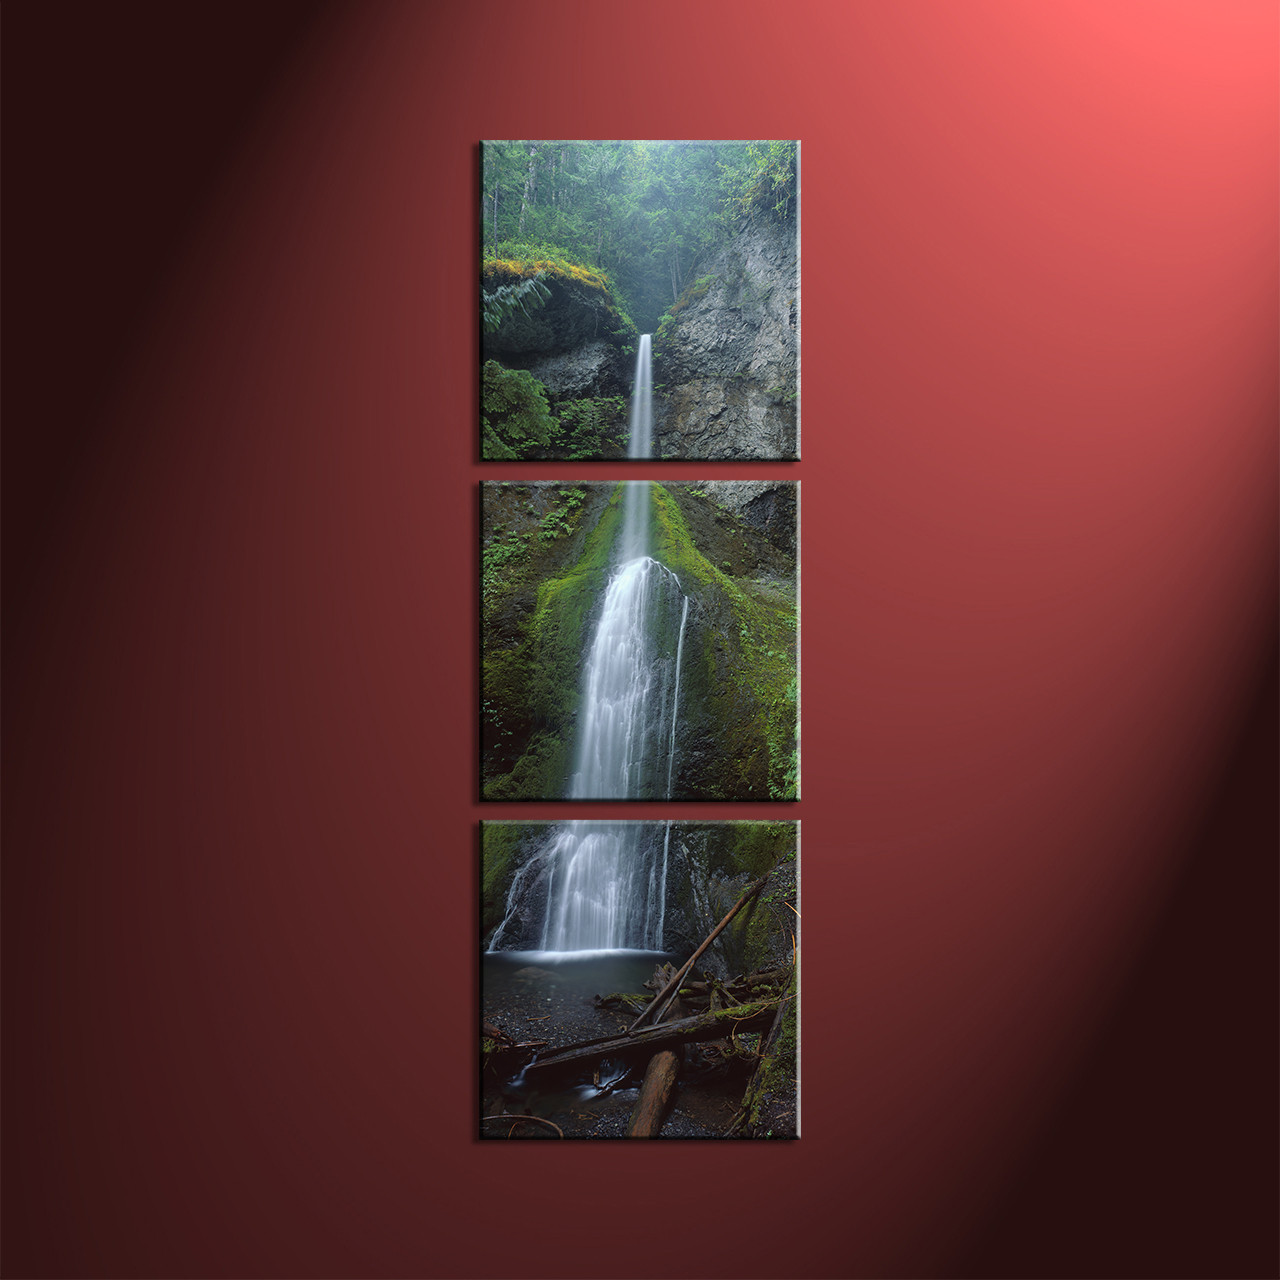 Large Vertical Paintings 3 Piece Canvas Green Forest Scenery Pictures